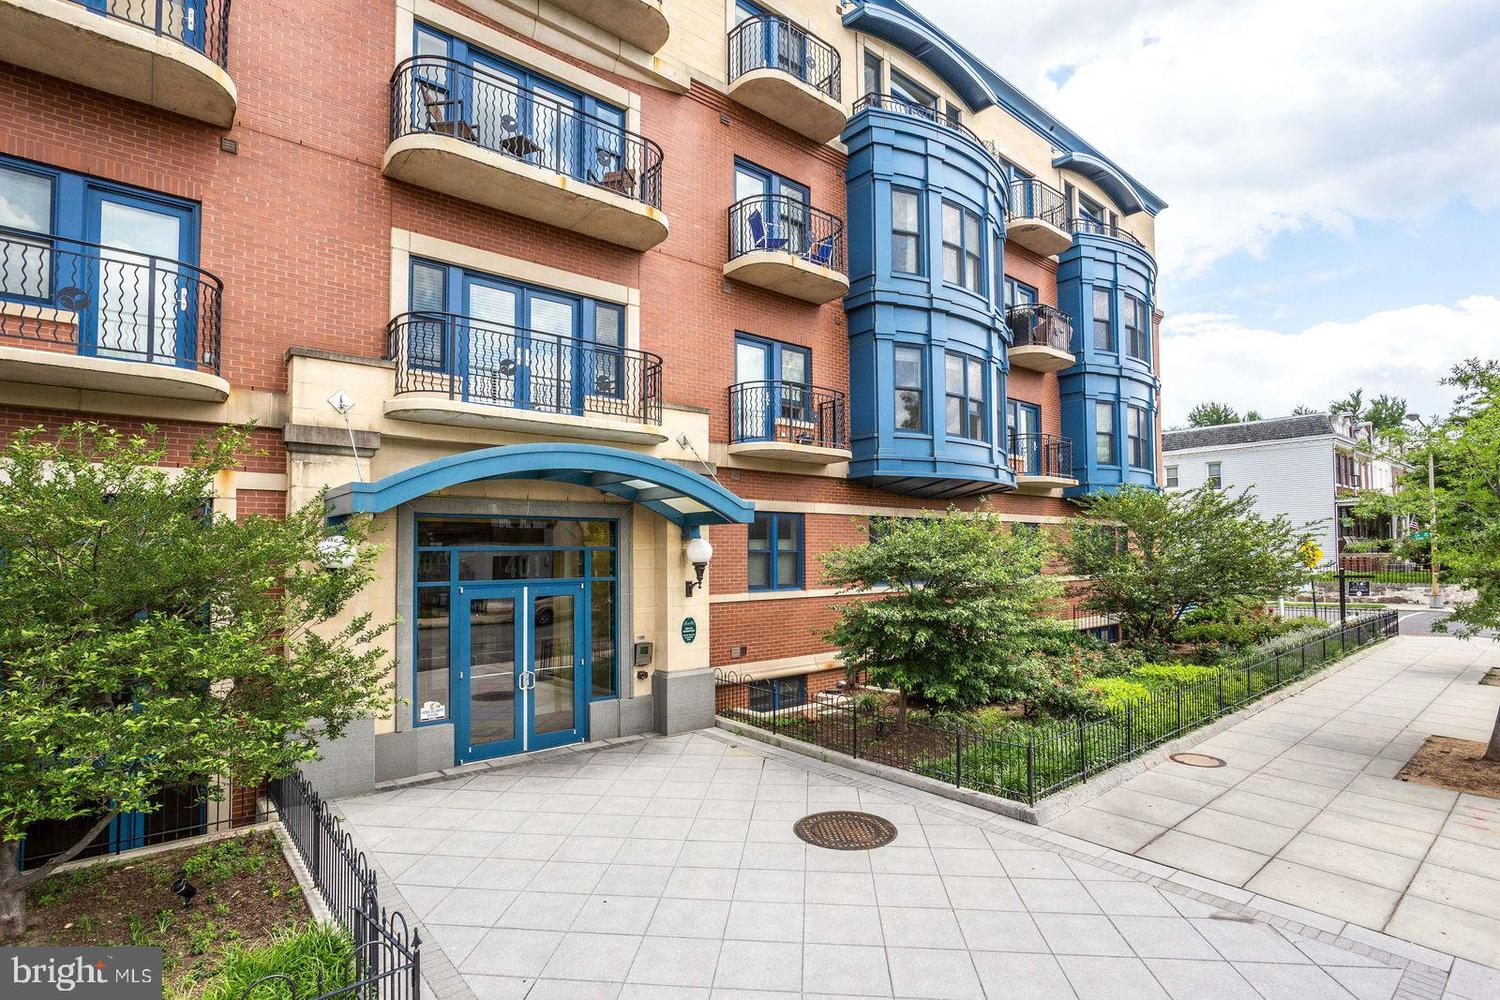 401 13th Street Northeast, Unit 410 Washington, DC 20002